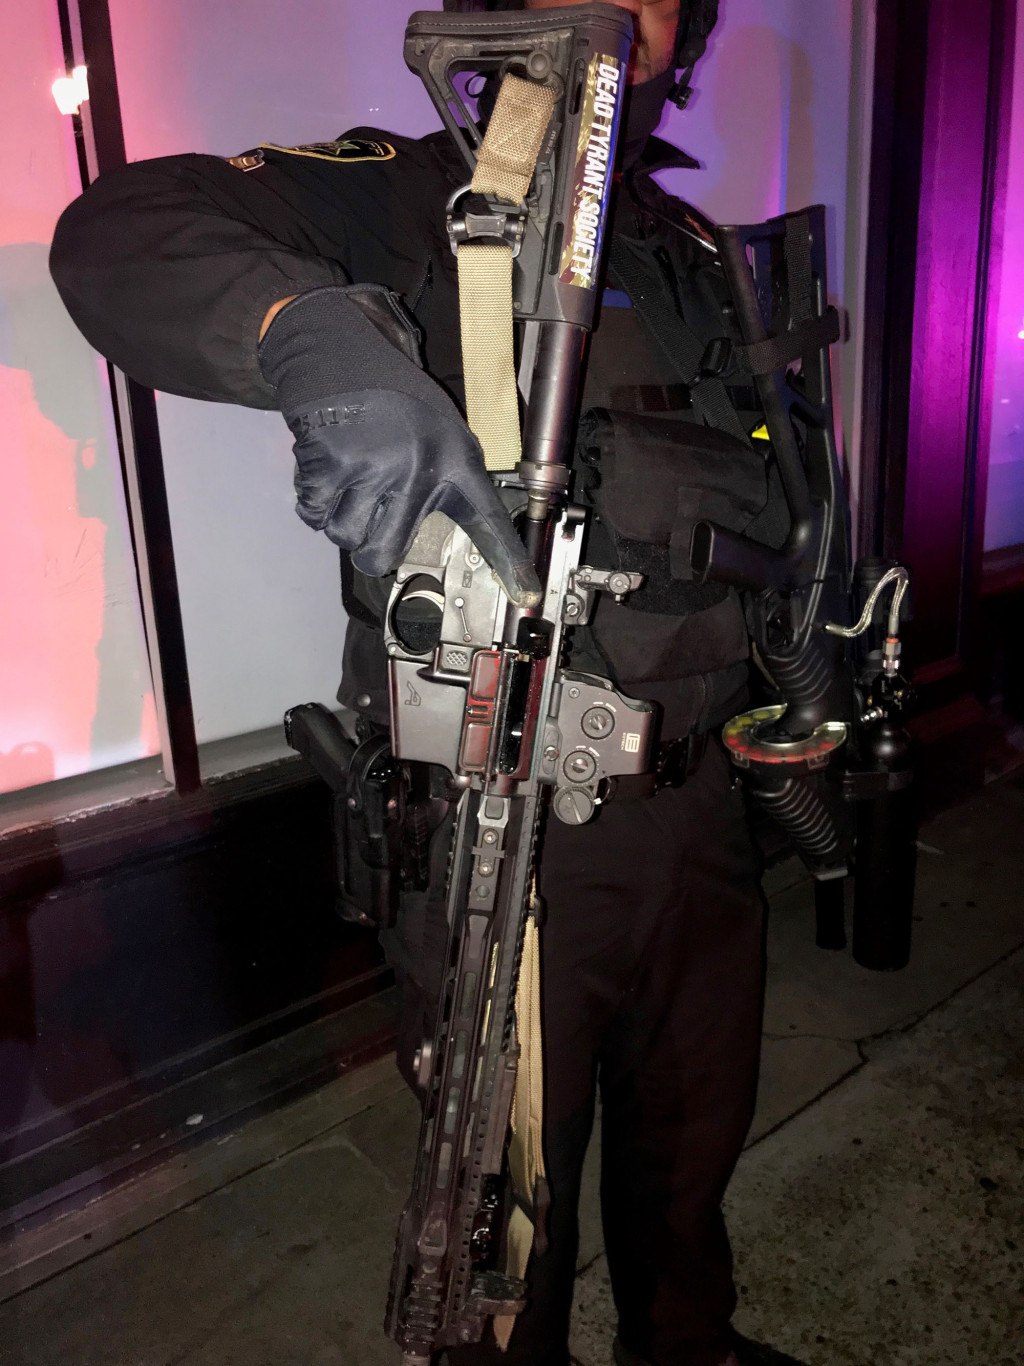 Loaded AR-15-style rifle among weapons seized during US protests 1